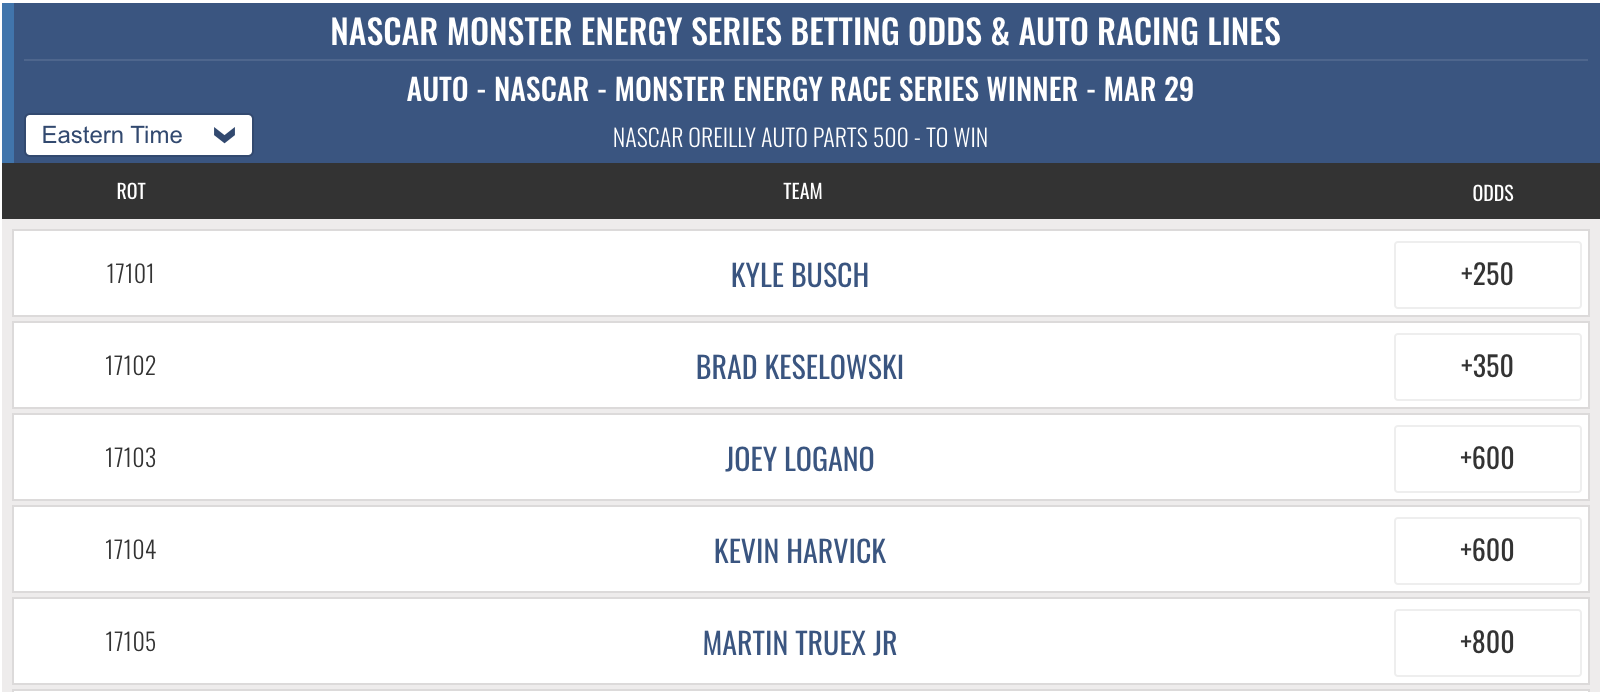 2019 Auto Parts 500 Betting Odds